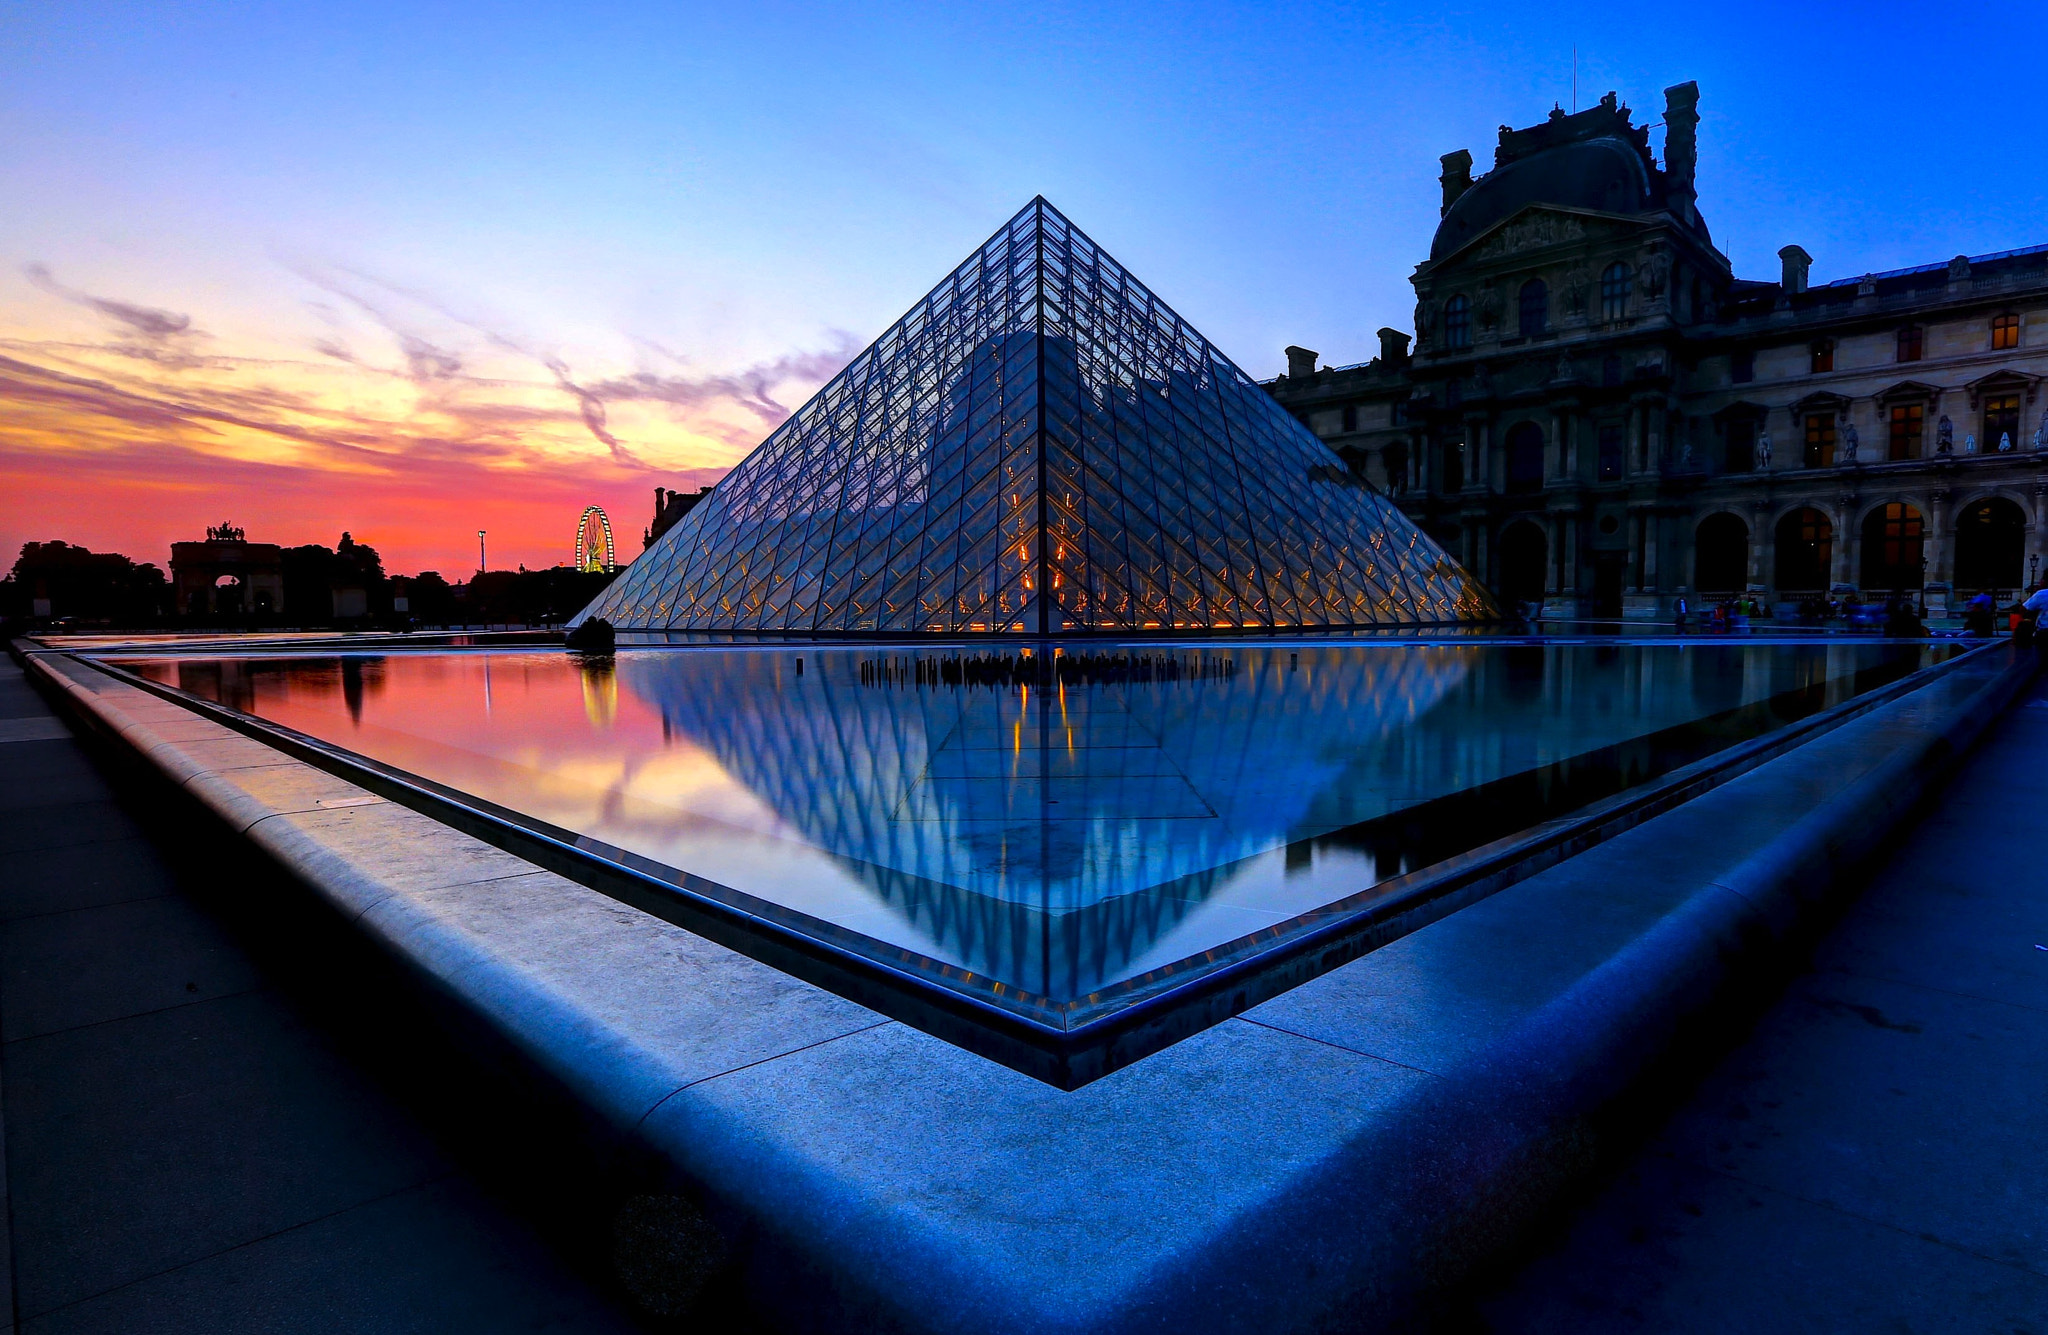 Photograph The Louvre by Vince Chong on 500px